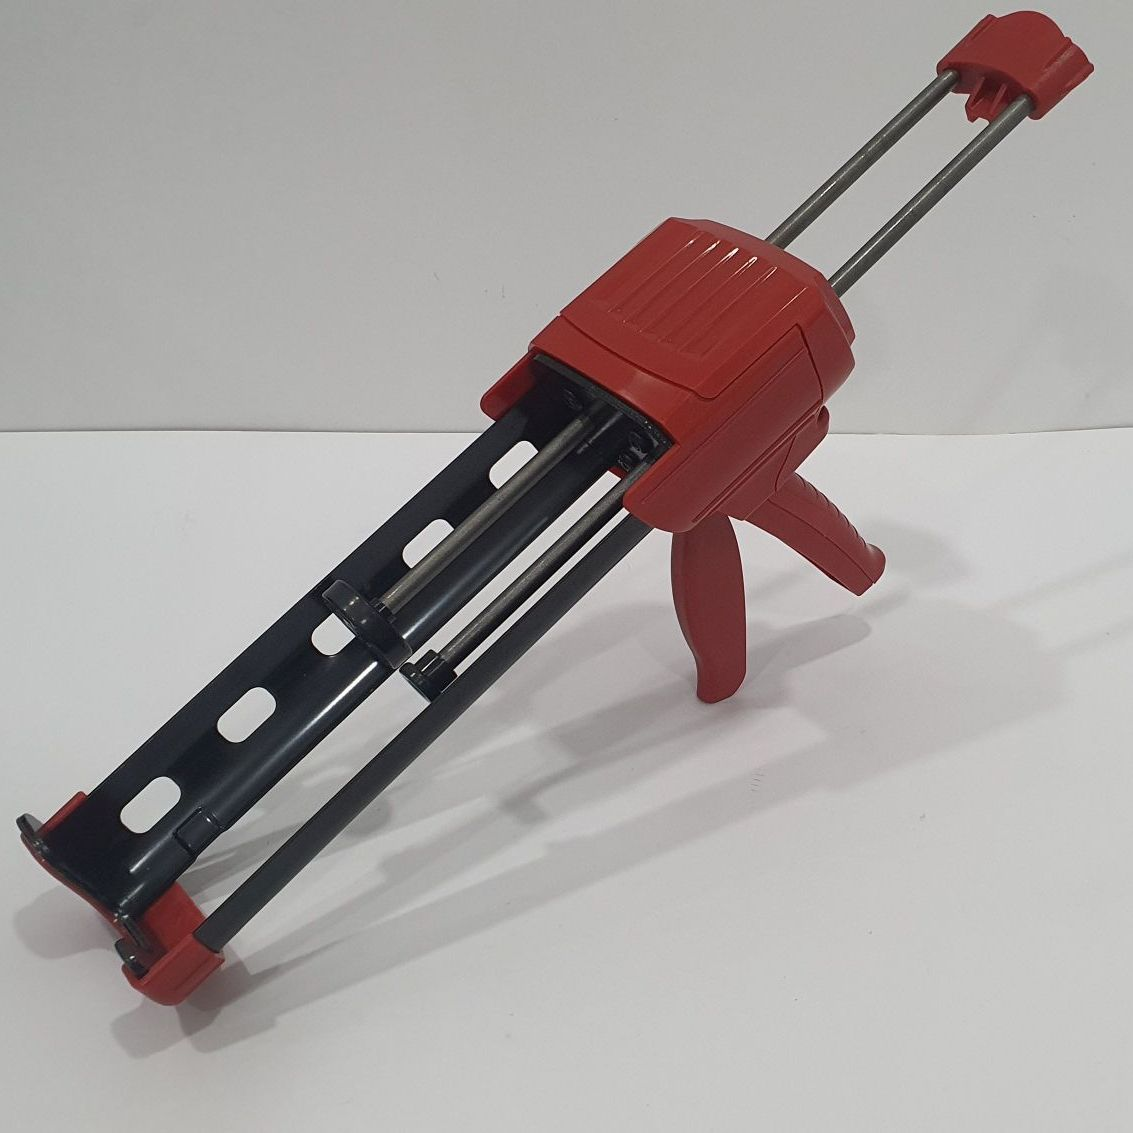 Heavy Duty Caulking Gun 3:1 Ratio for chemical Epoxy works also with hilti fischer sika horse